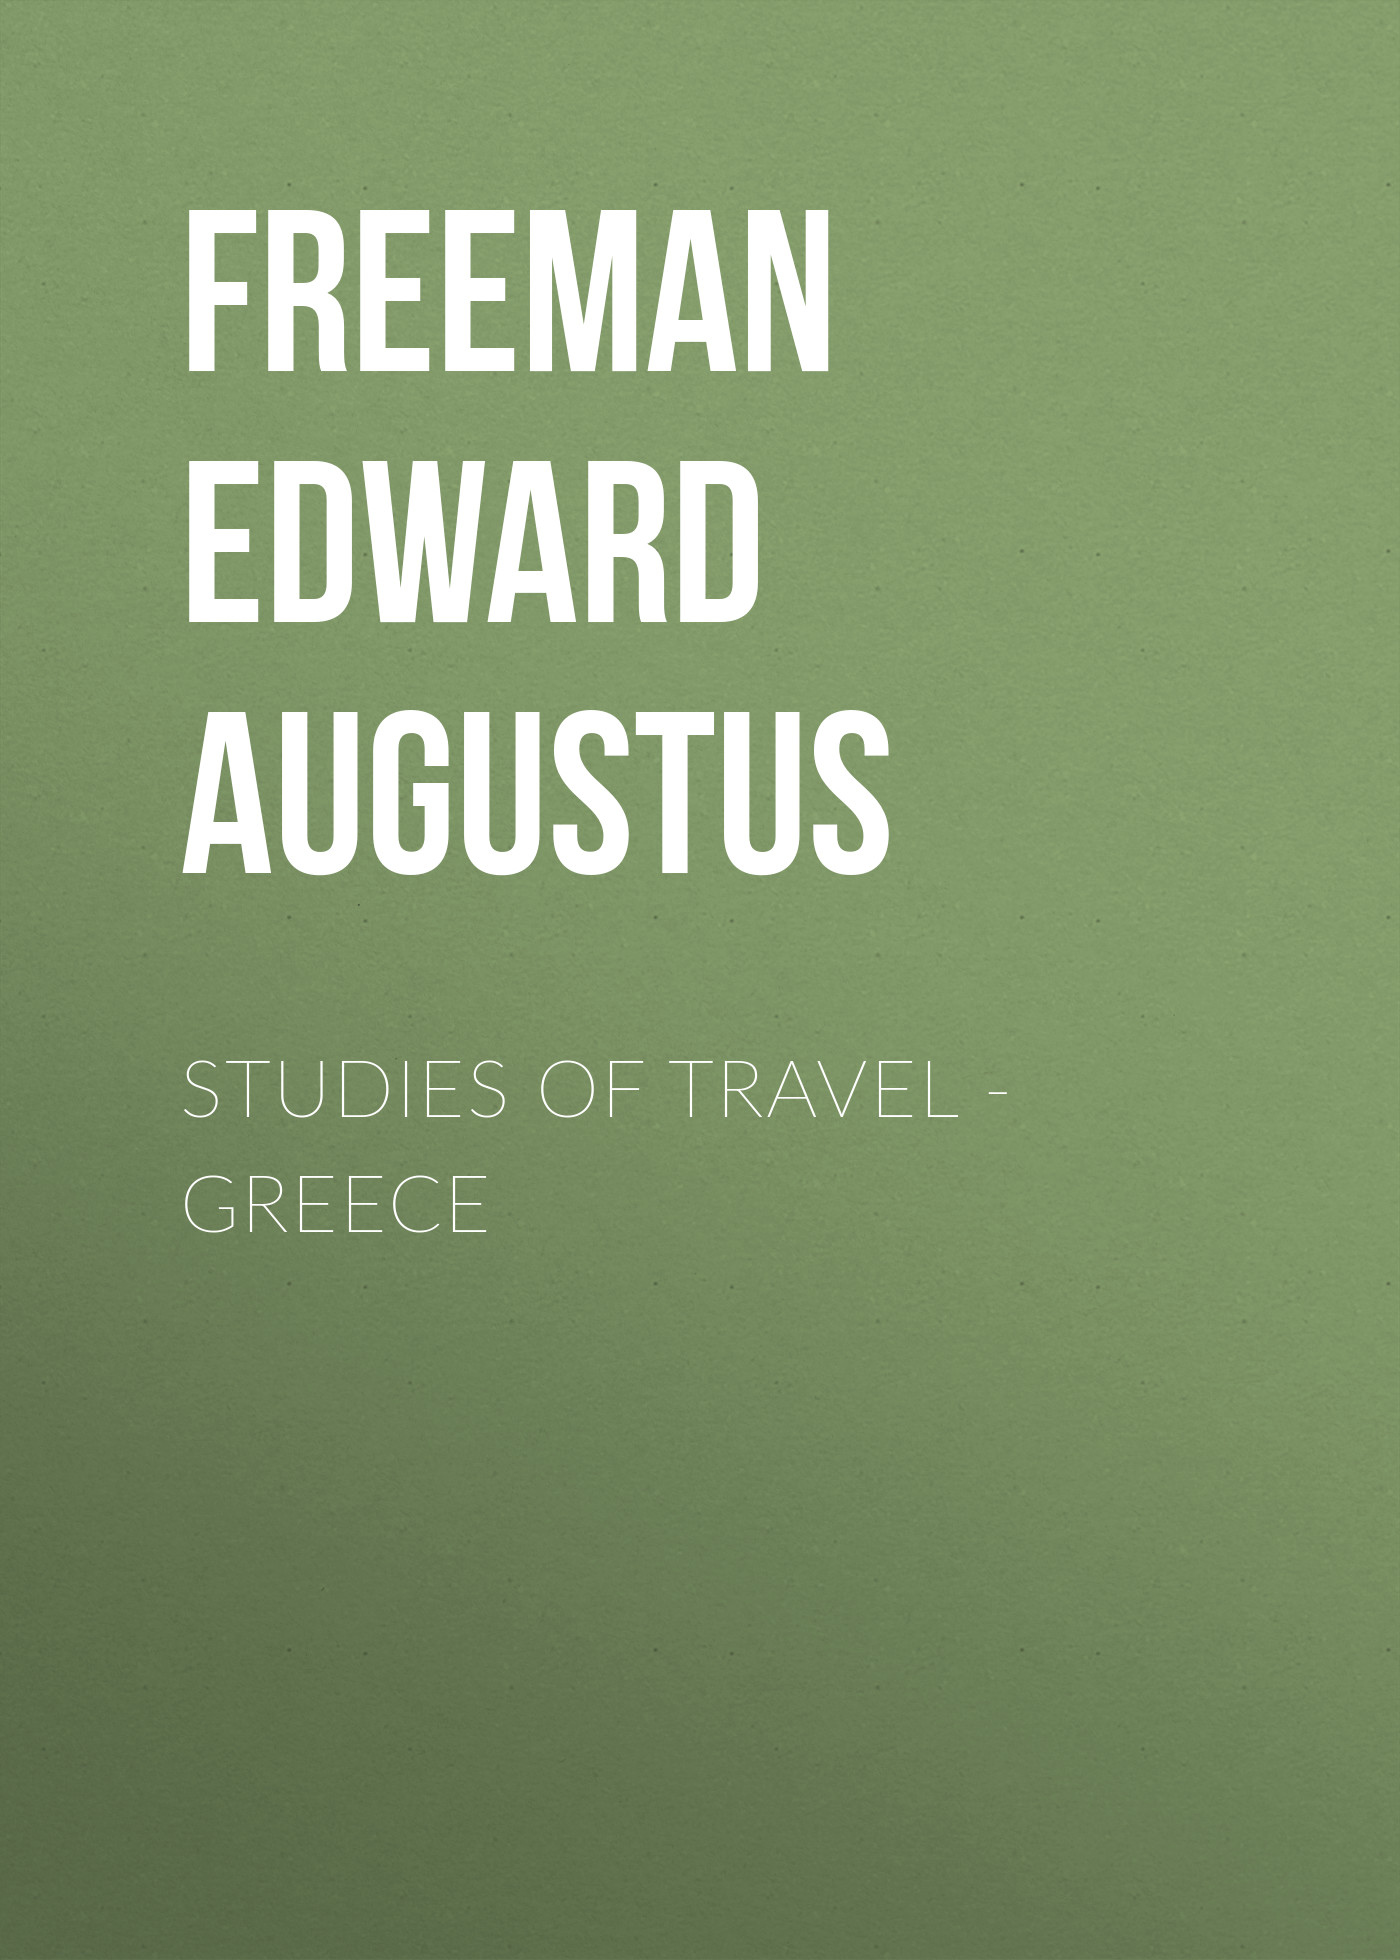 Freeman Edward Augustus Studies of Travel - Greece r austin freeman osirise silm